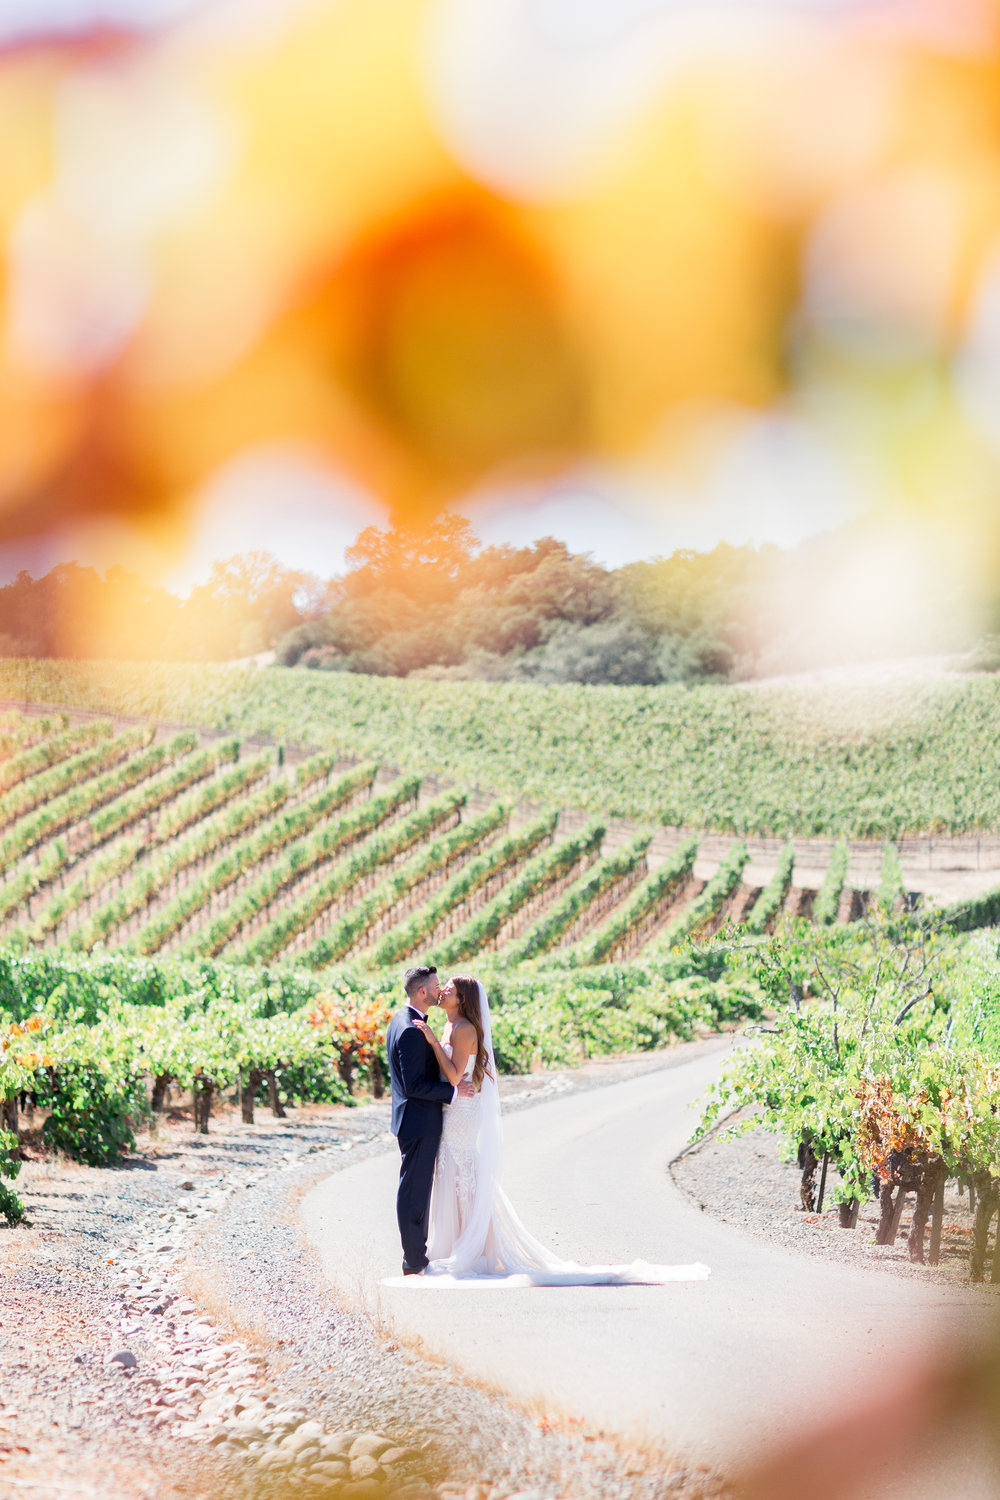 Calegari-Vineyards-Healdsburg-Wedding-Photographer (72 of 262).jpg